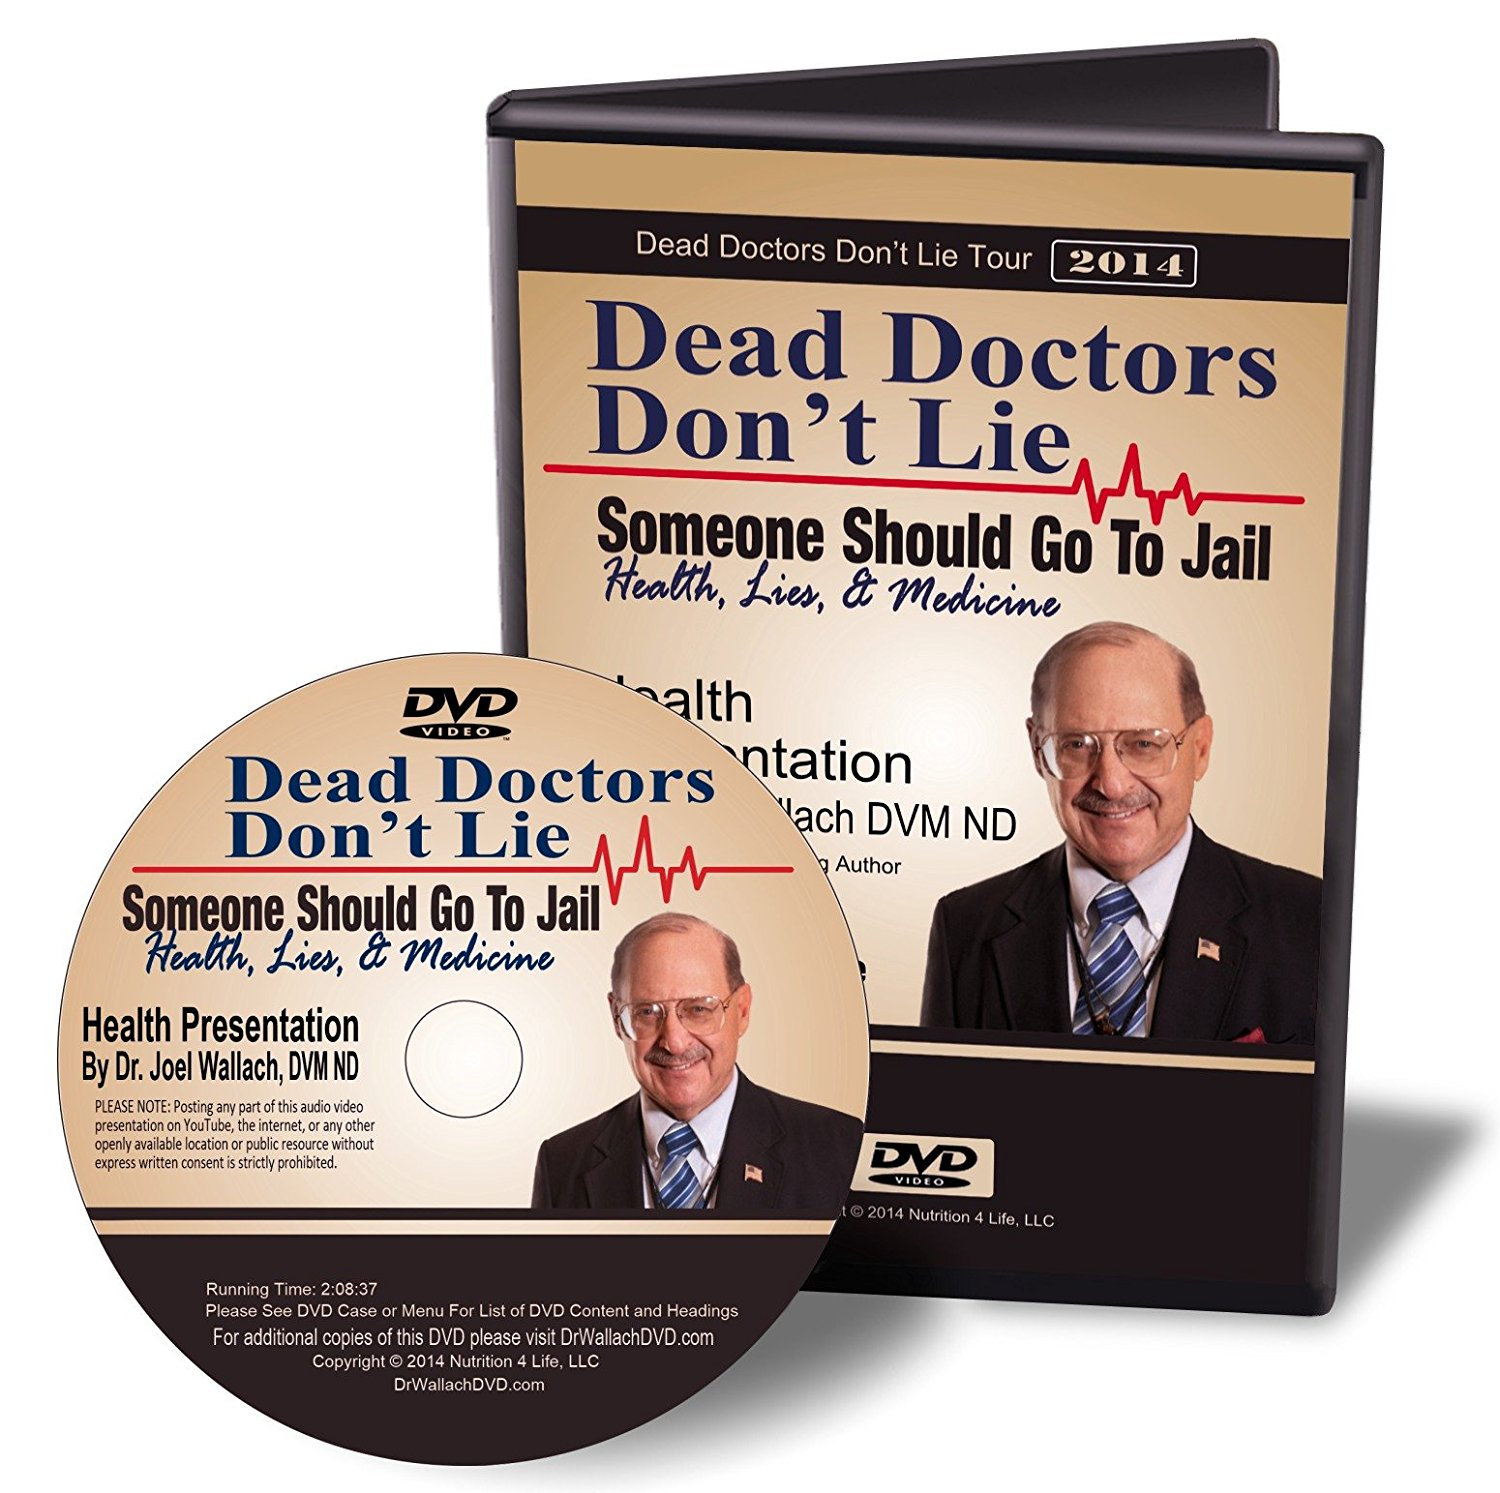 DVD – Dead Doctors Don't Lie; Somebody Should Go To Jail – By Dr Joel Wallach